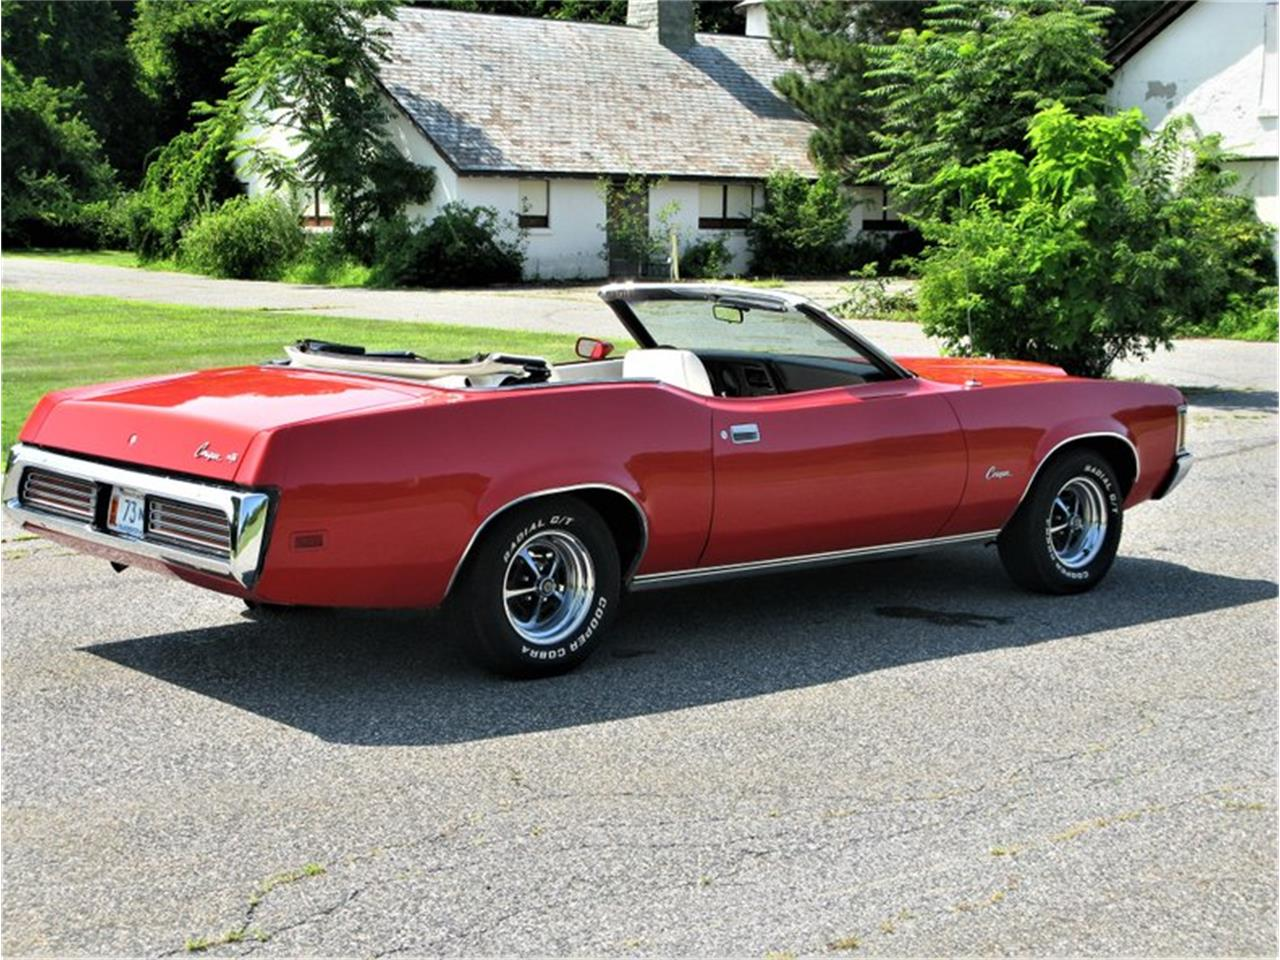 1971 Mercury Cougar (CC-1261231) for sale in Saratoga Springs, New York